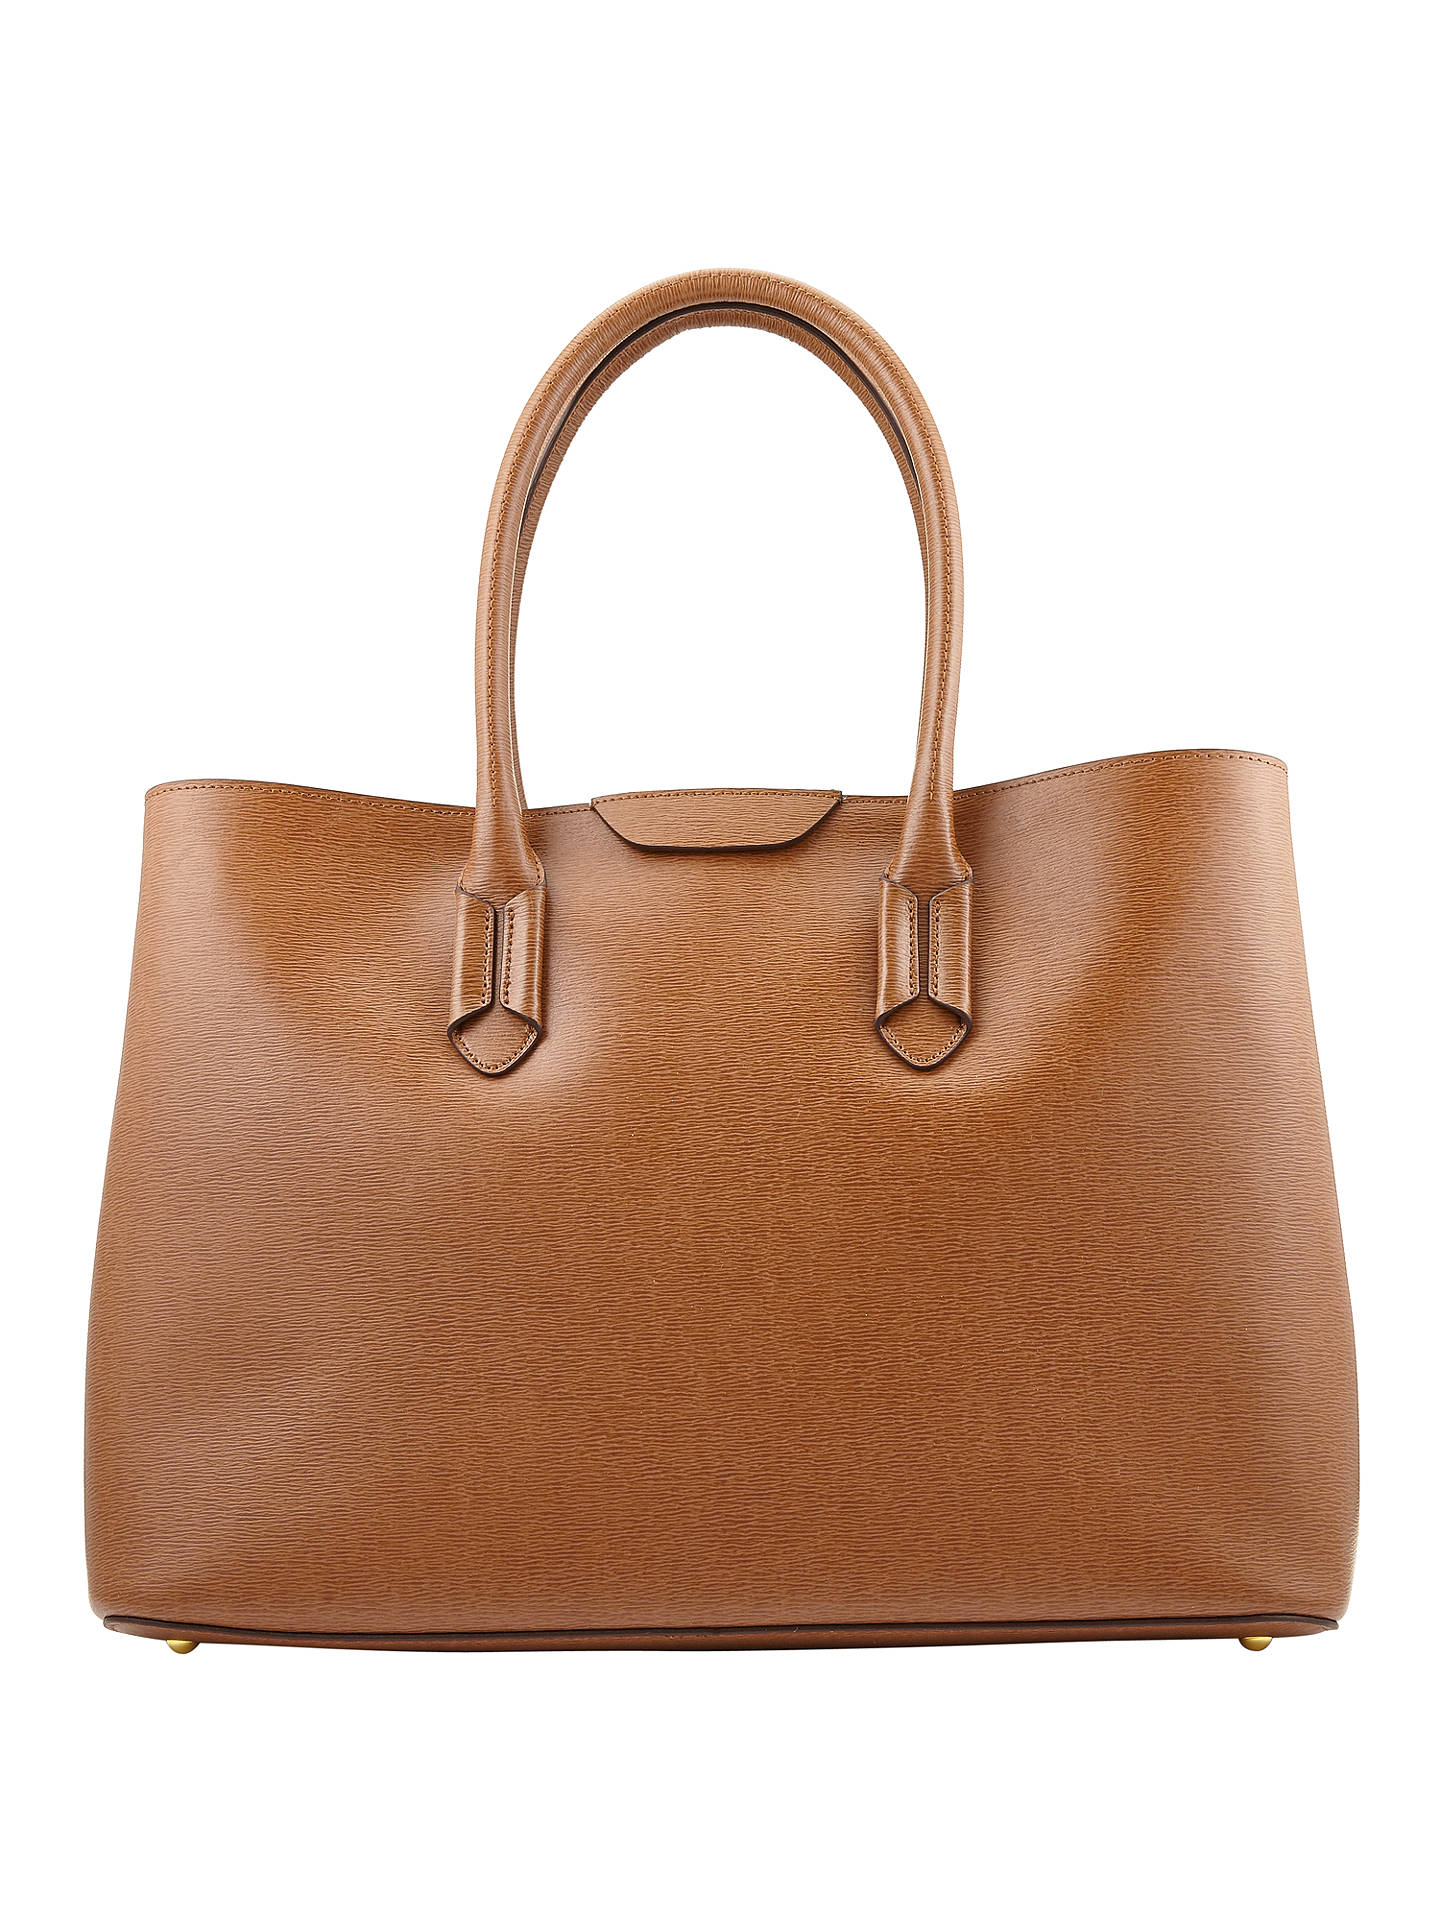 e4c74d85fea5 ... promo code for buylauren ralph lauren city tote bag lauren tan online  at johnlewis d28ee 22762